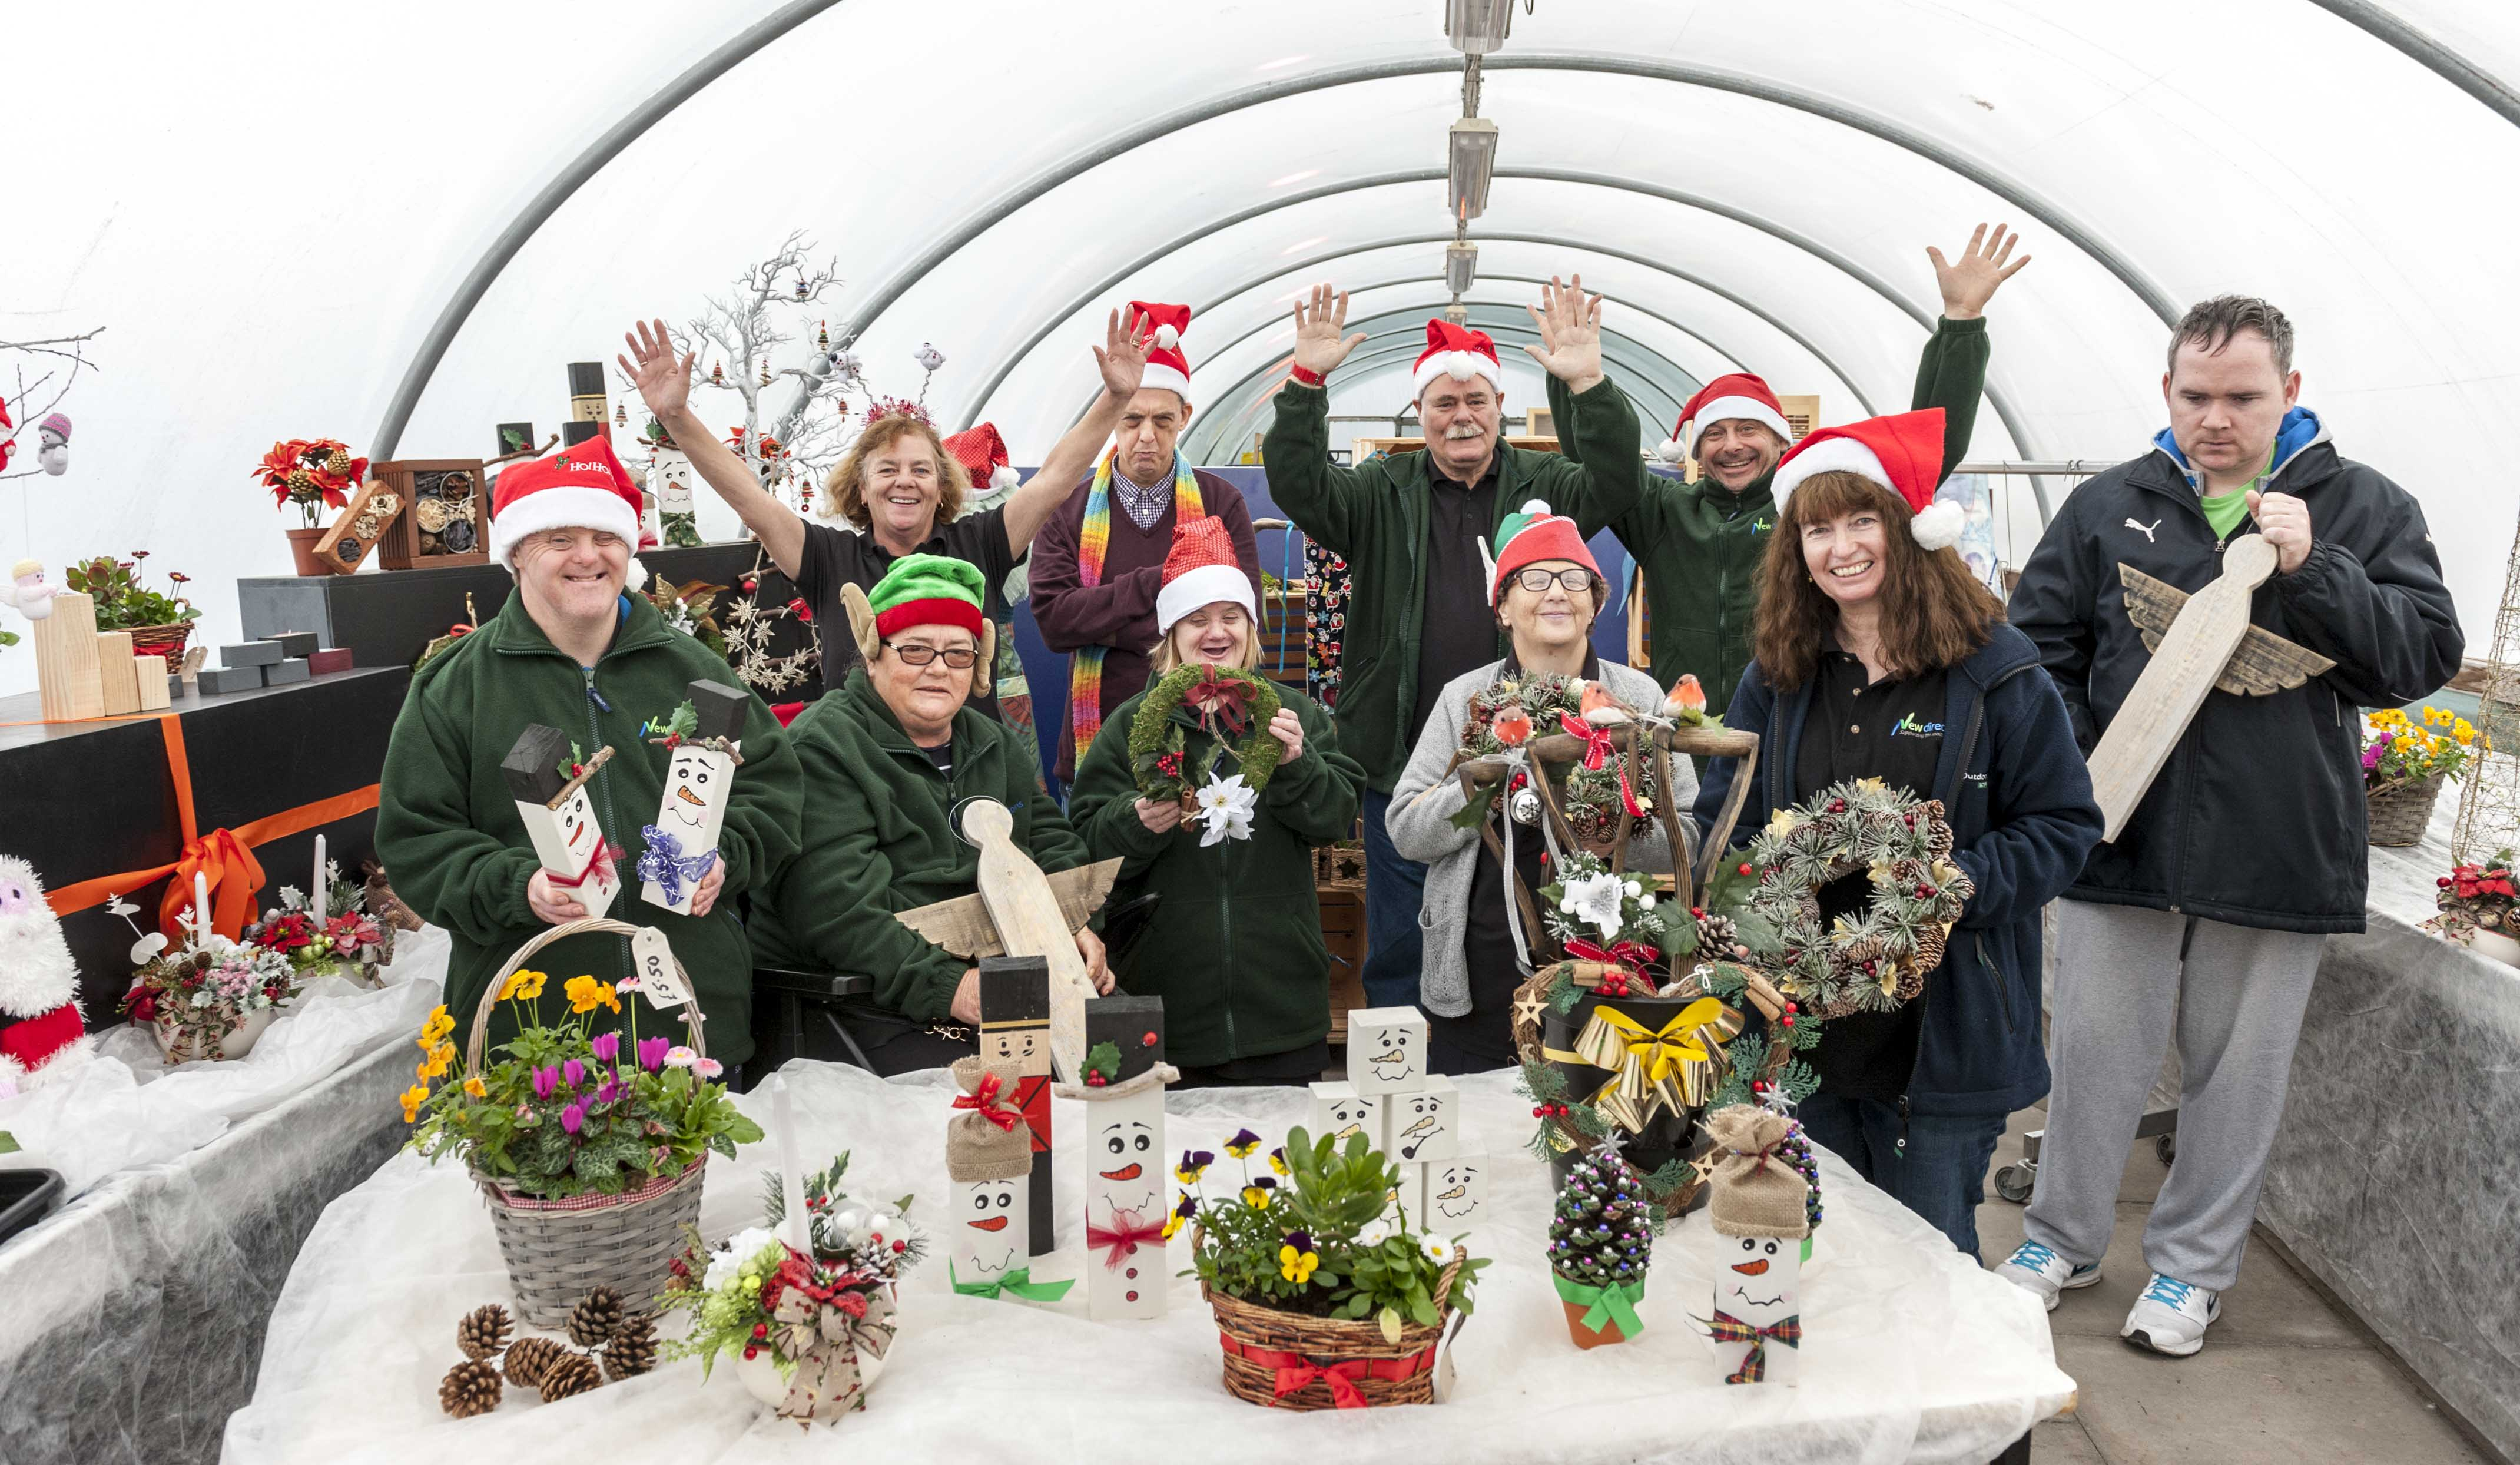 Sefton residents are being invited to a Christmas market with a difference in Southport.    The event at the New Leaf garden centre on Rotten Row will feature festive goods created by clients of the boroughÂ's leading adult social care provider, New Directions. They include people with support needs...